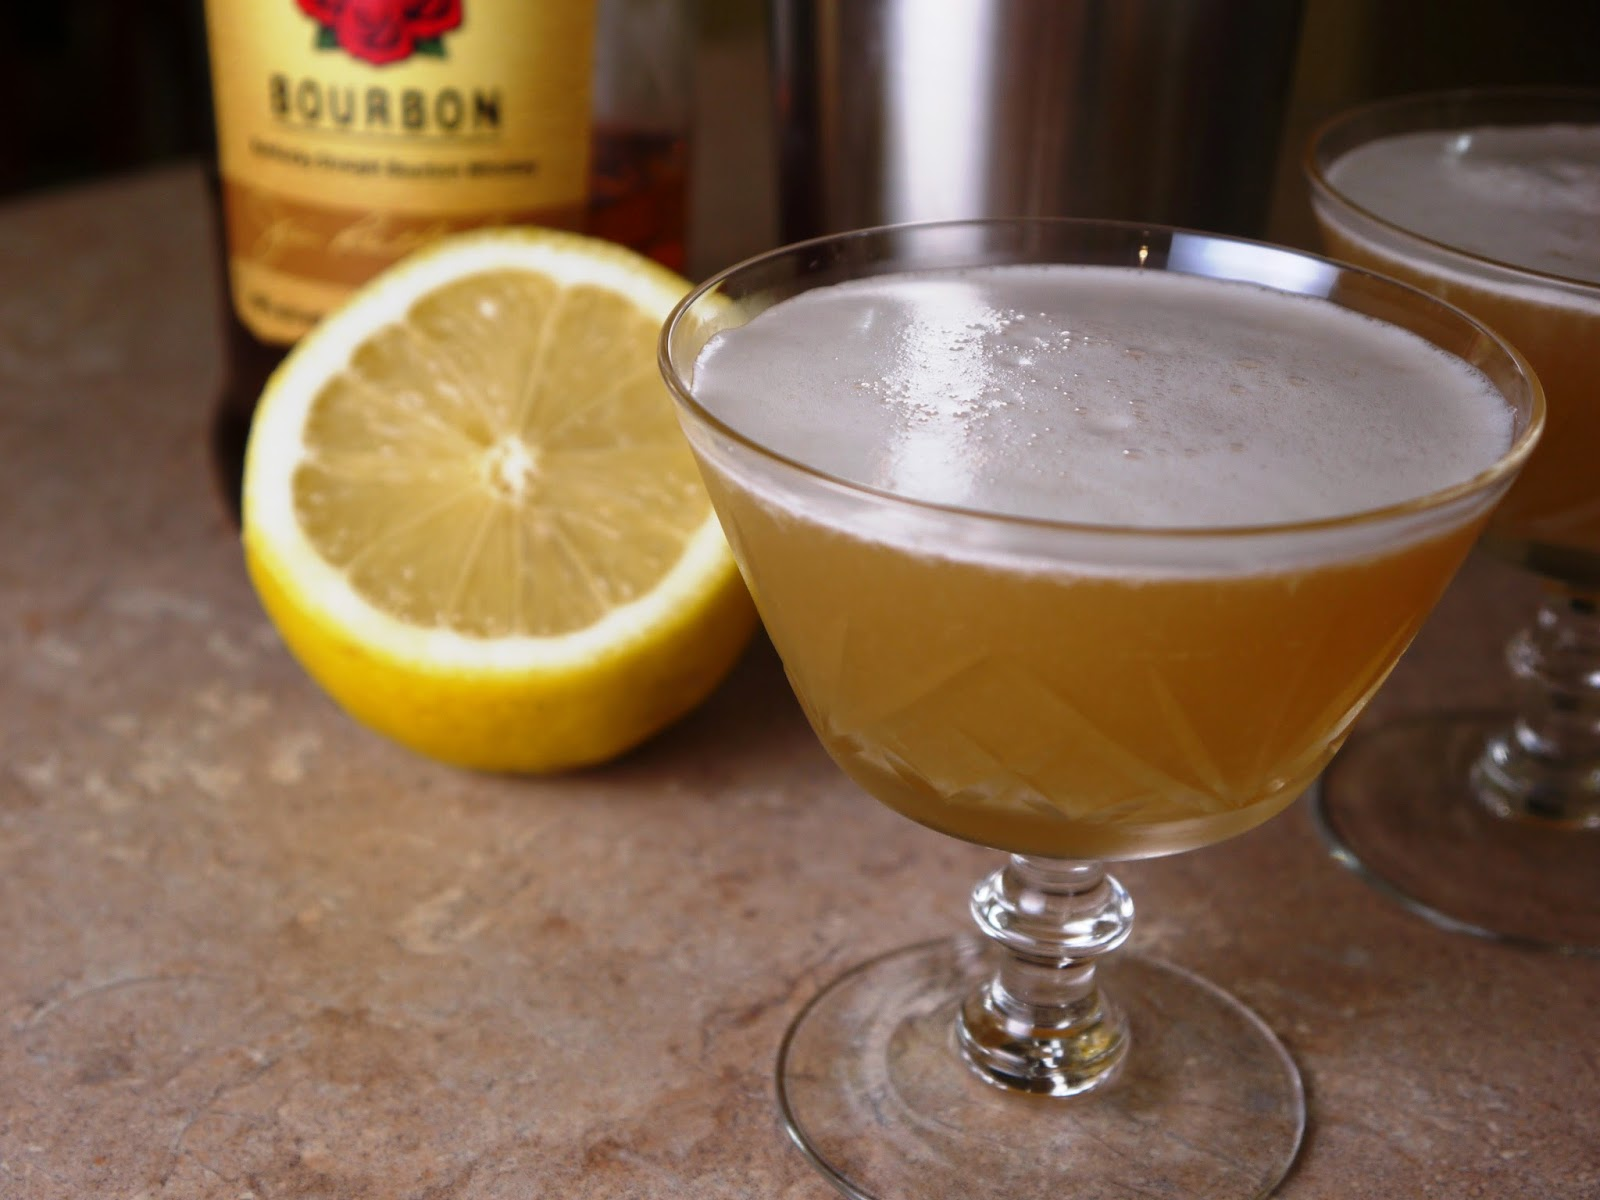 Bourbon sour with egg white